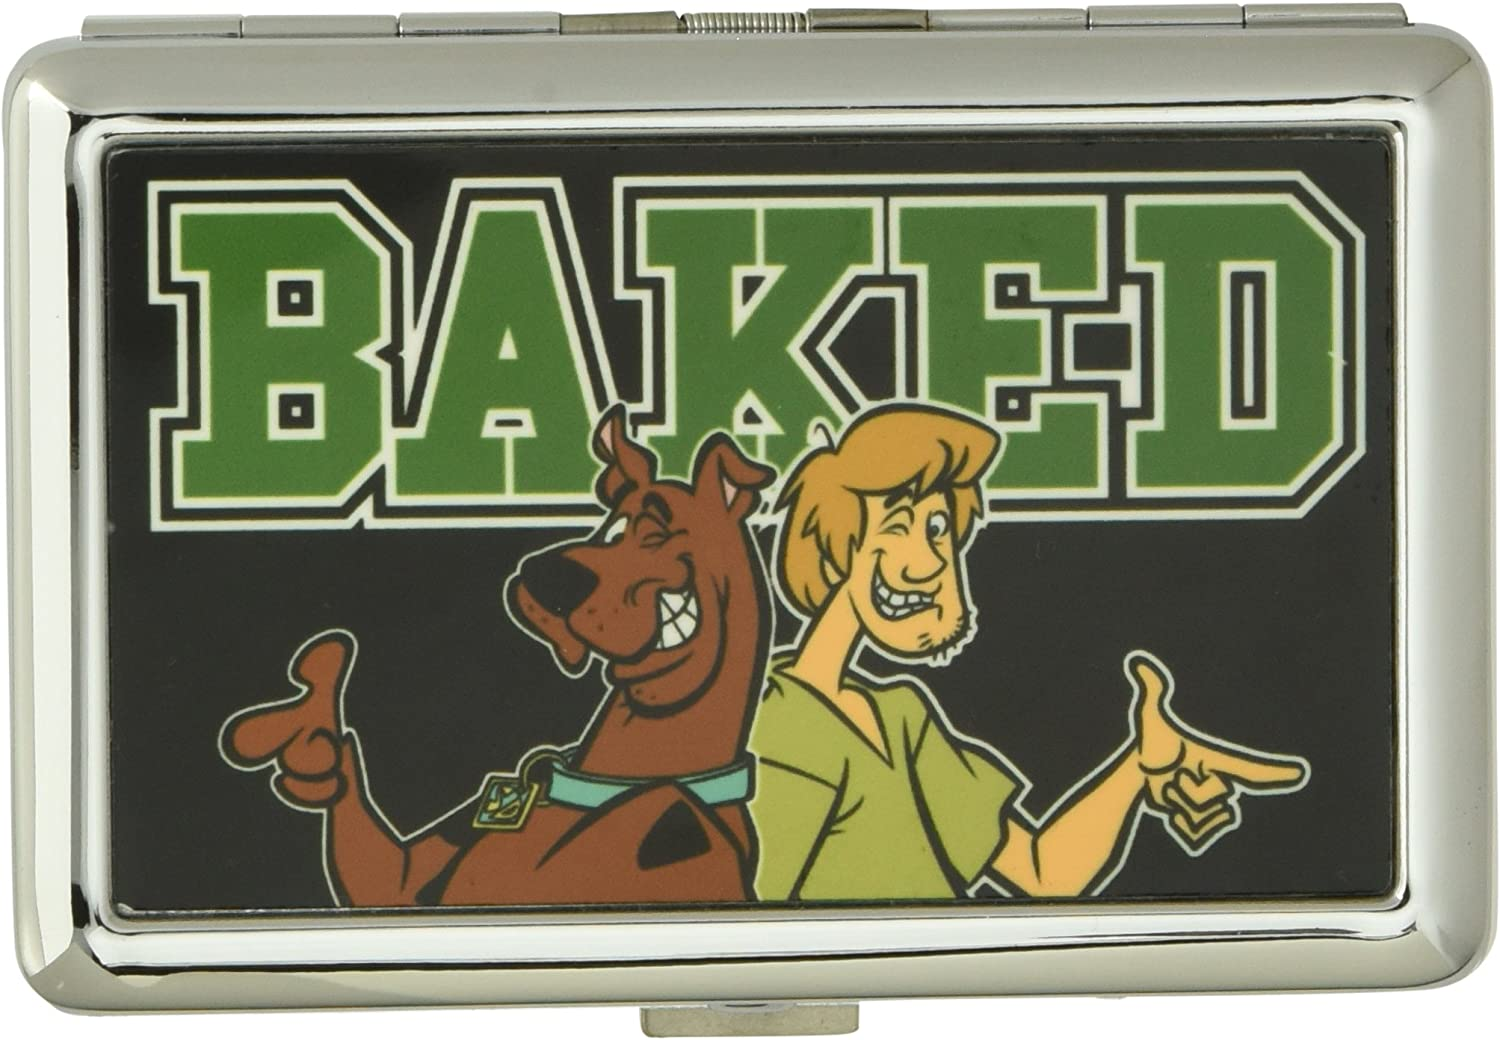 Buckle-Down unisex adult Buckle-down Business Card Holder - Scooby Doo Wallet, Scooby Doo10, 4.0 x 2.9 US